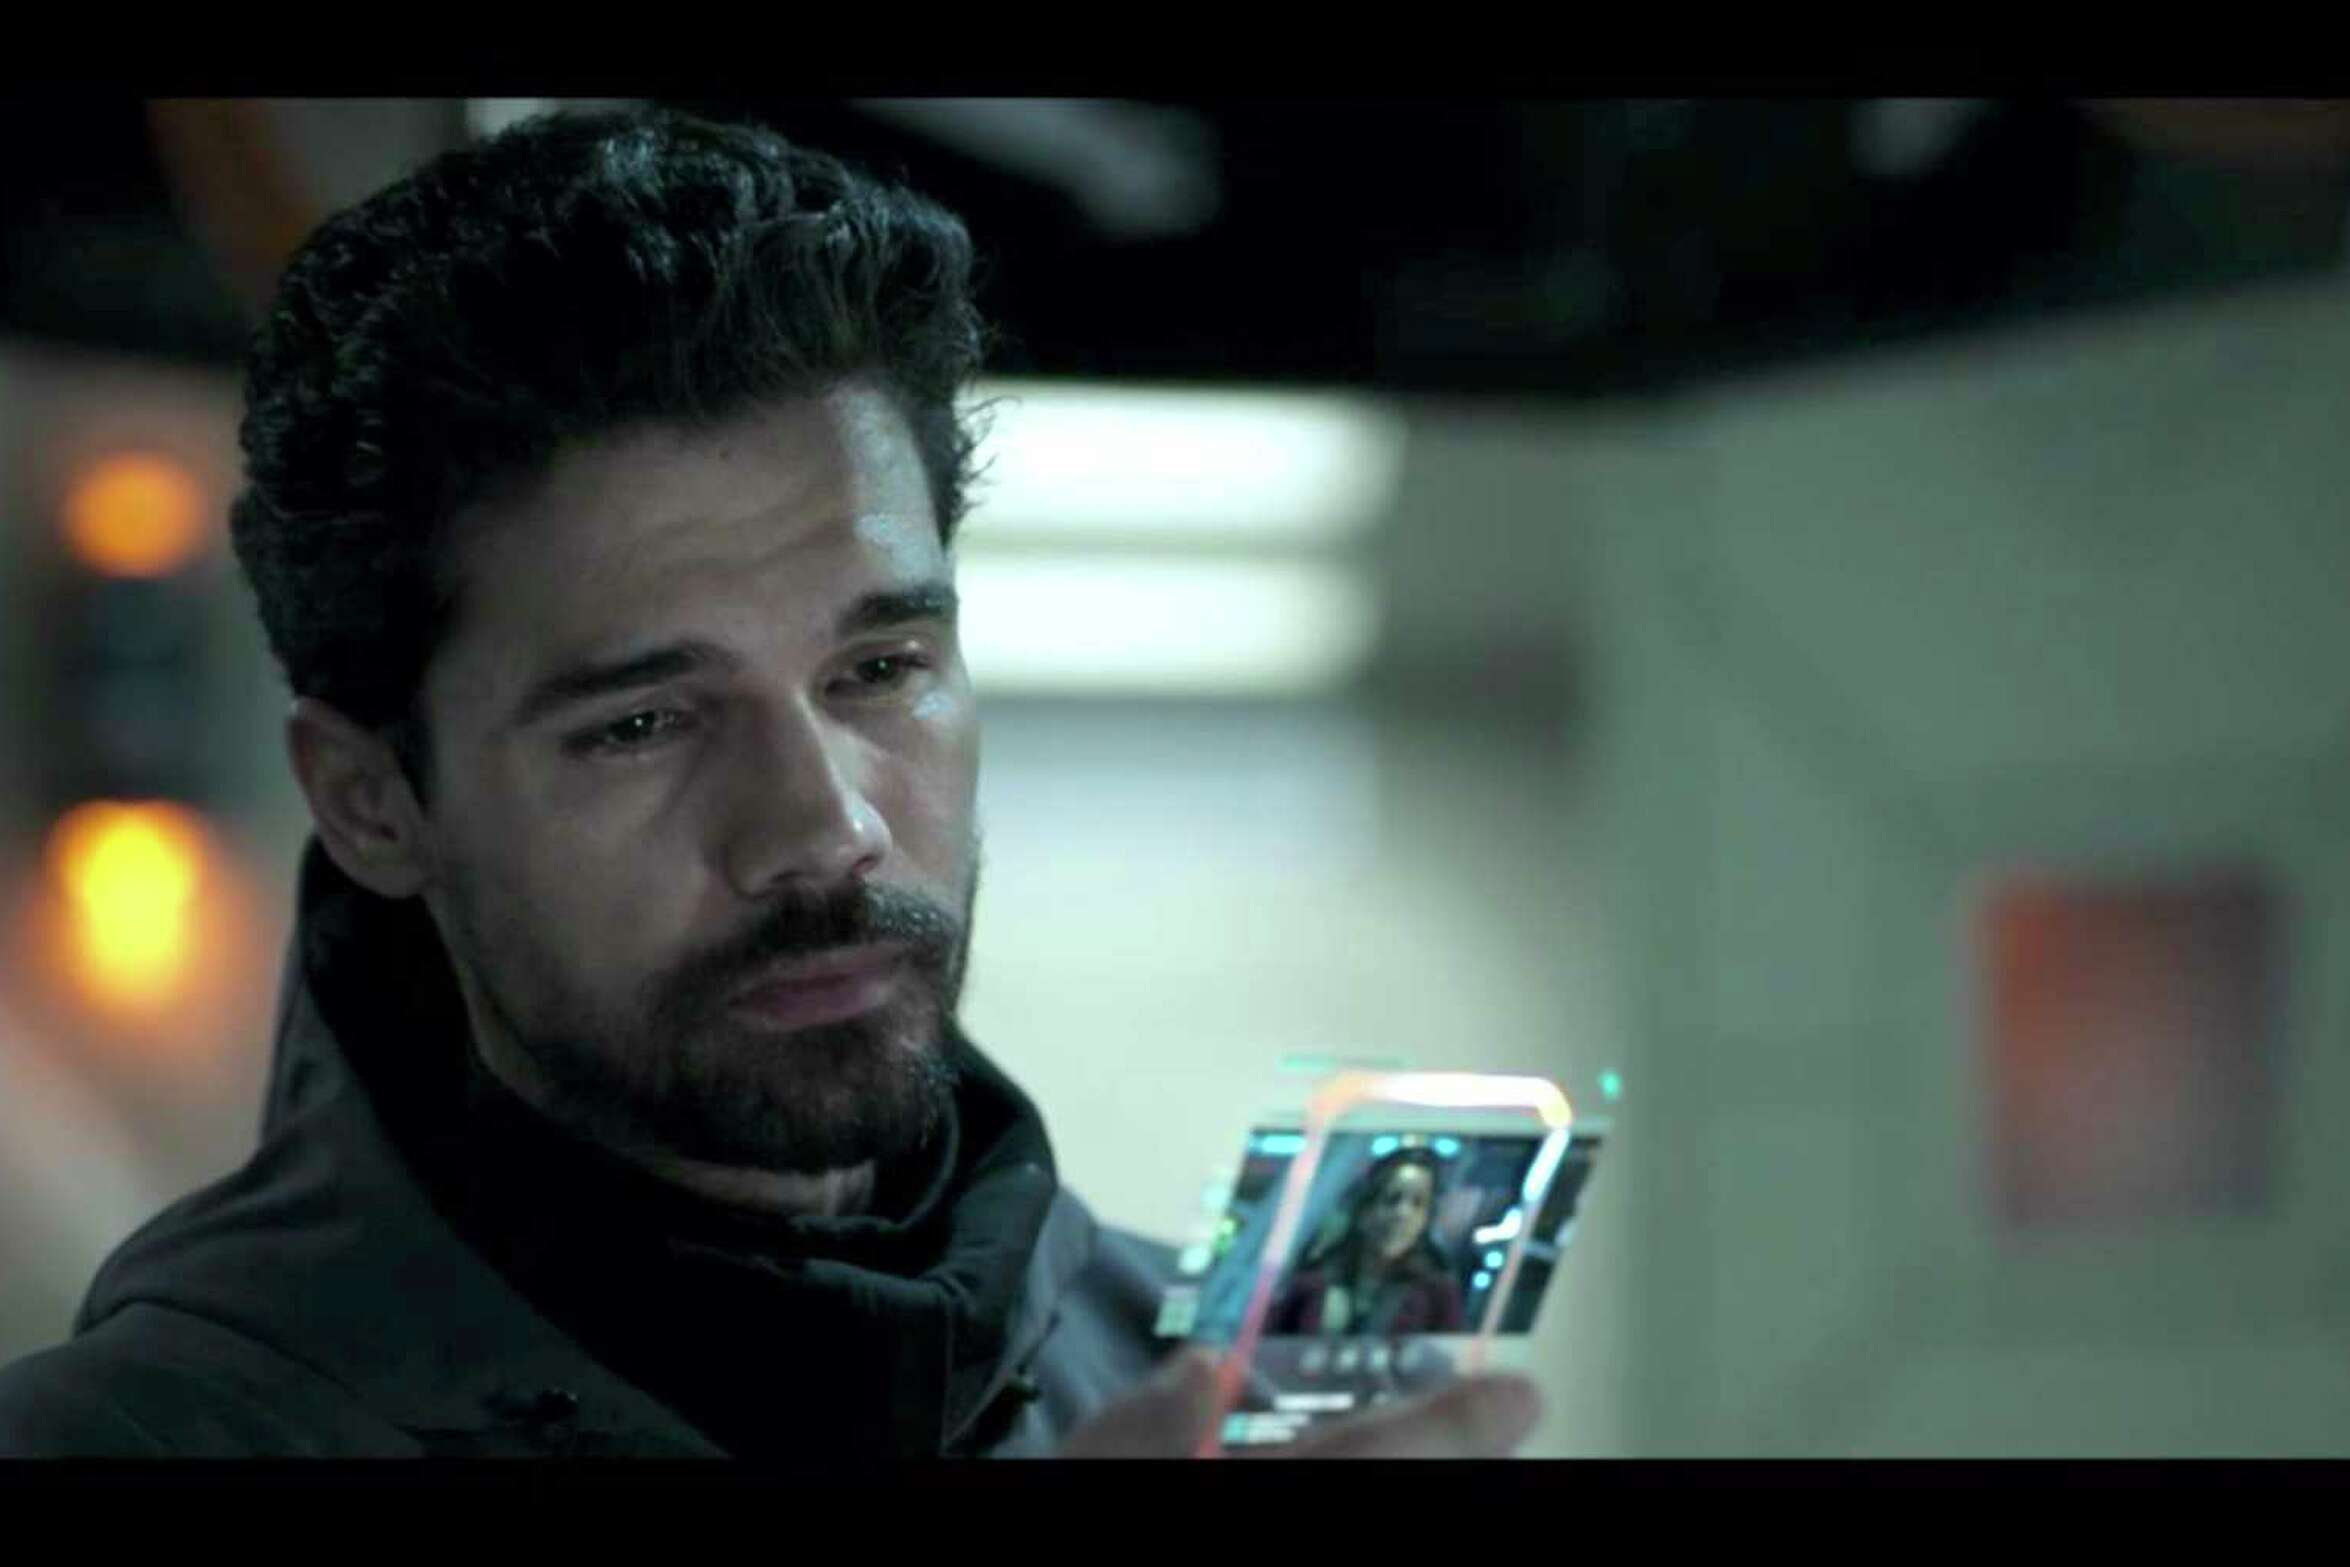 """Actor Steven Strait, as James Holden, studies a hand terminal, the futuristic communications devices seen in the Amazon Prime Video sci-fi series """"The Expanse."""""""